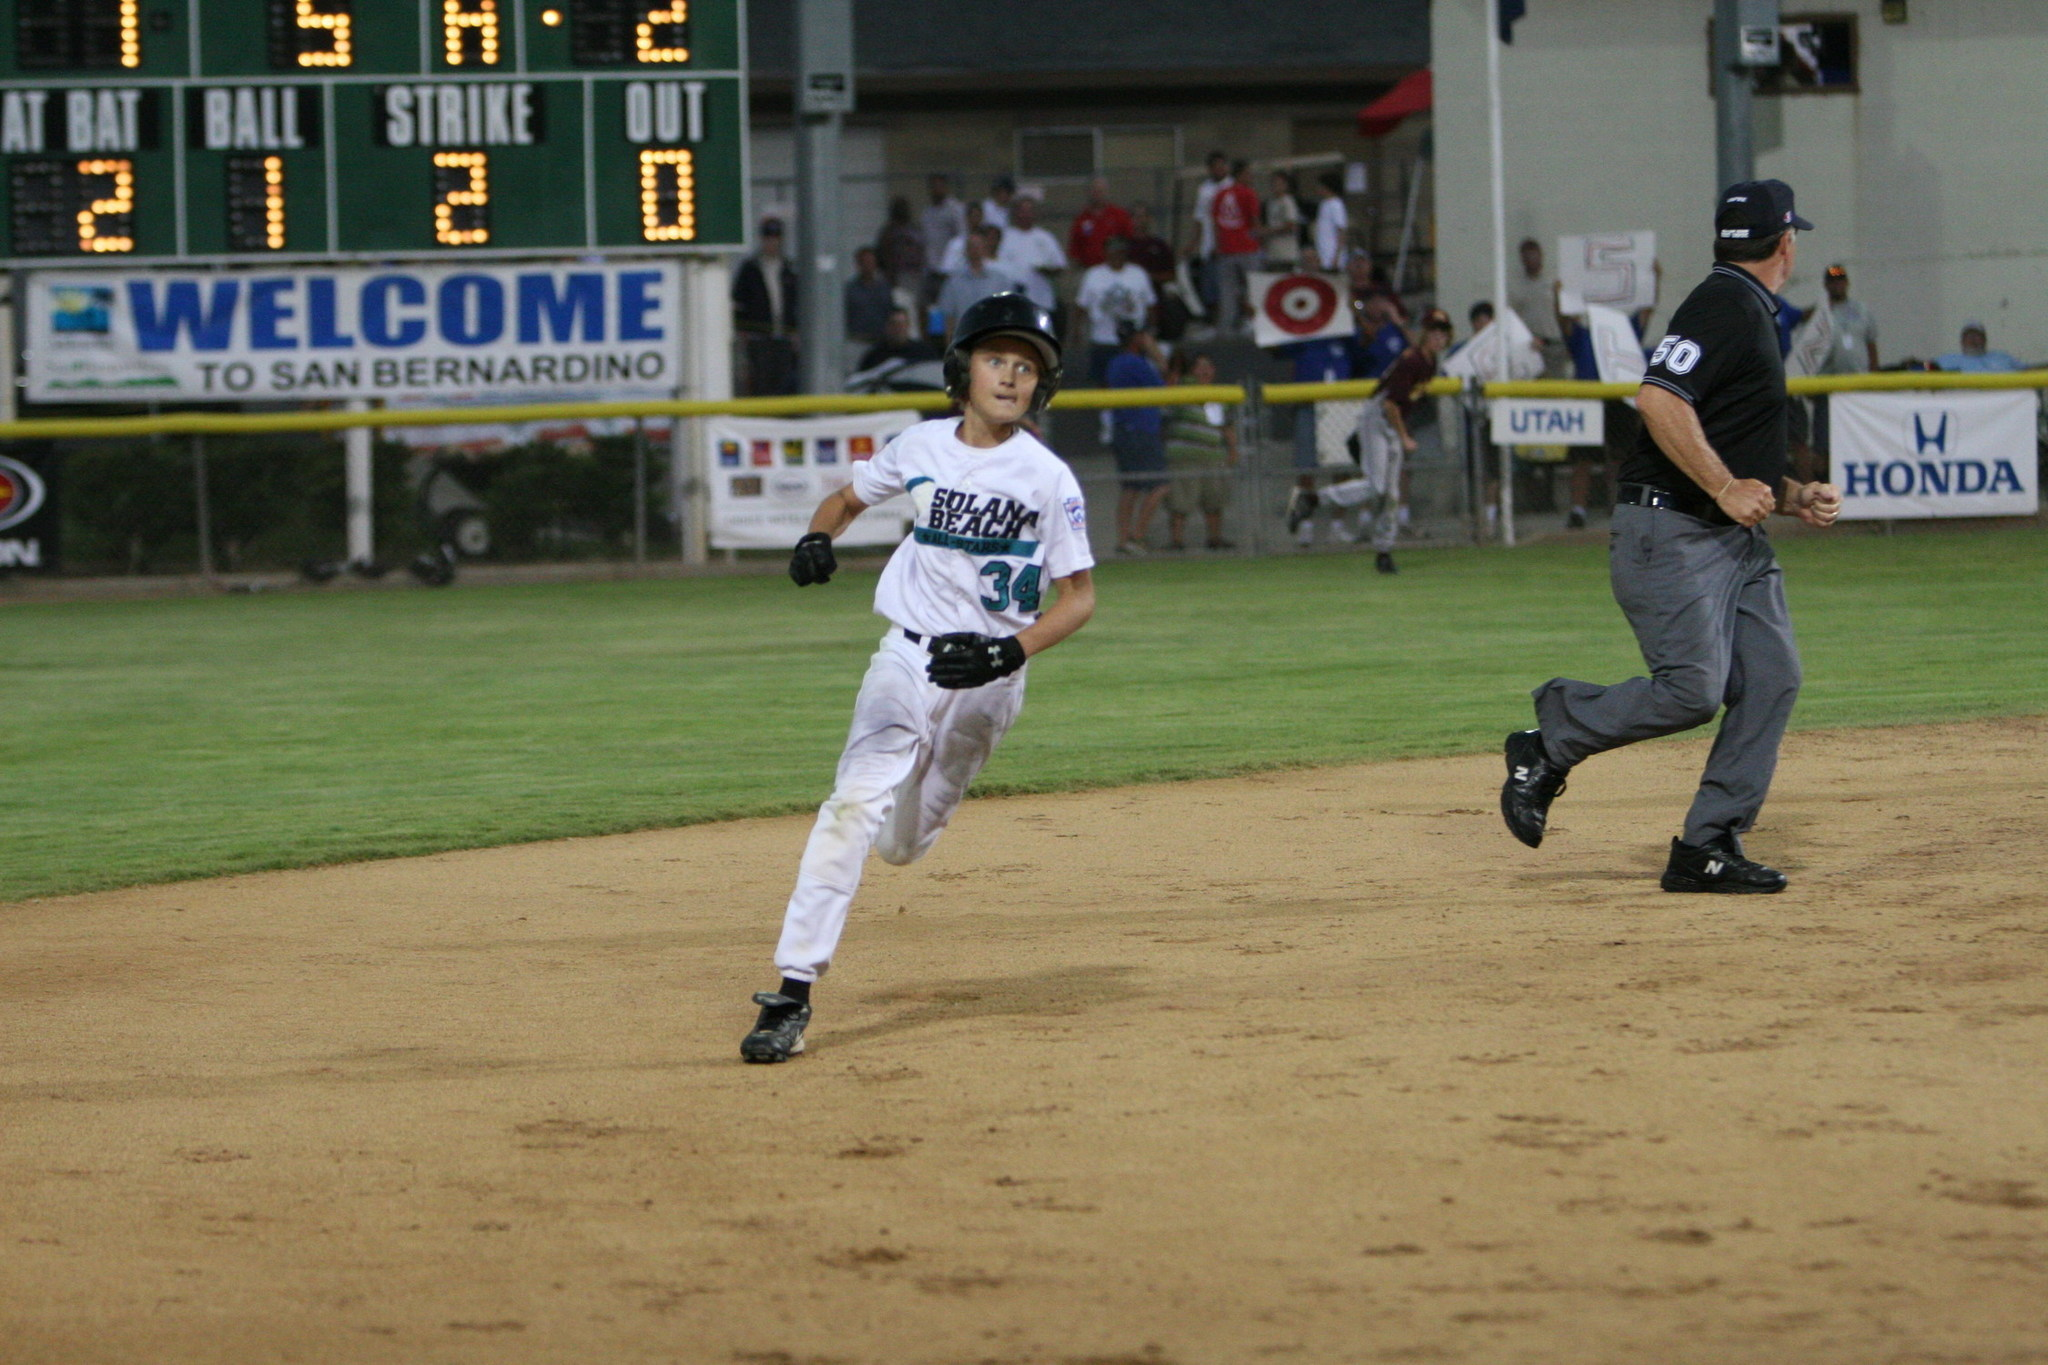 Solana Beach leadoff hitter Chad Thurston rounding the bases.